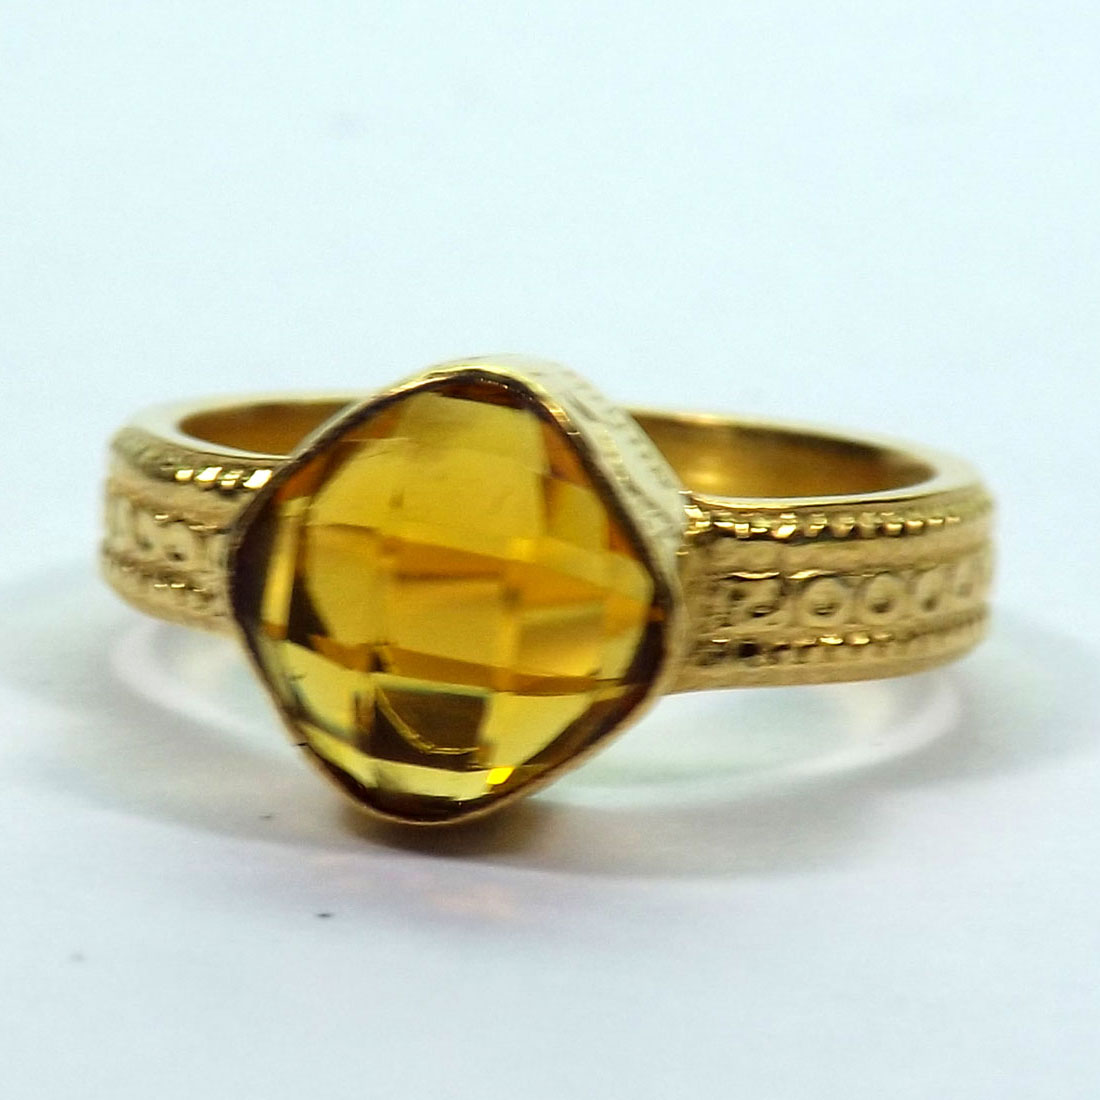 CITRINE HYDRO GLASS C - HBR998 BEAUTIFUL CITRINE HYDRO GLASS HANDMADE BRASS RINGS